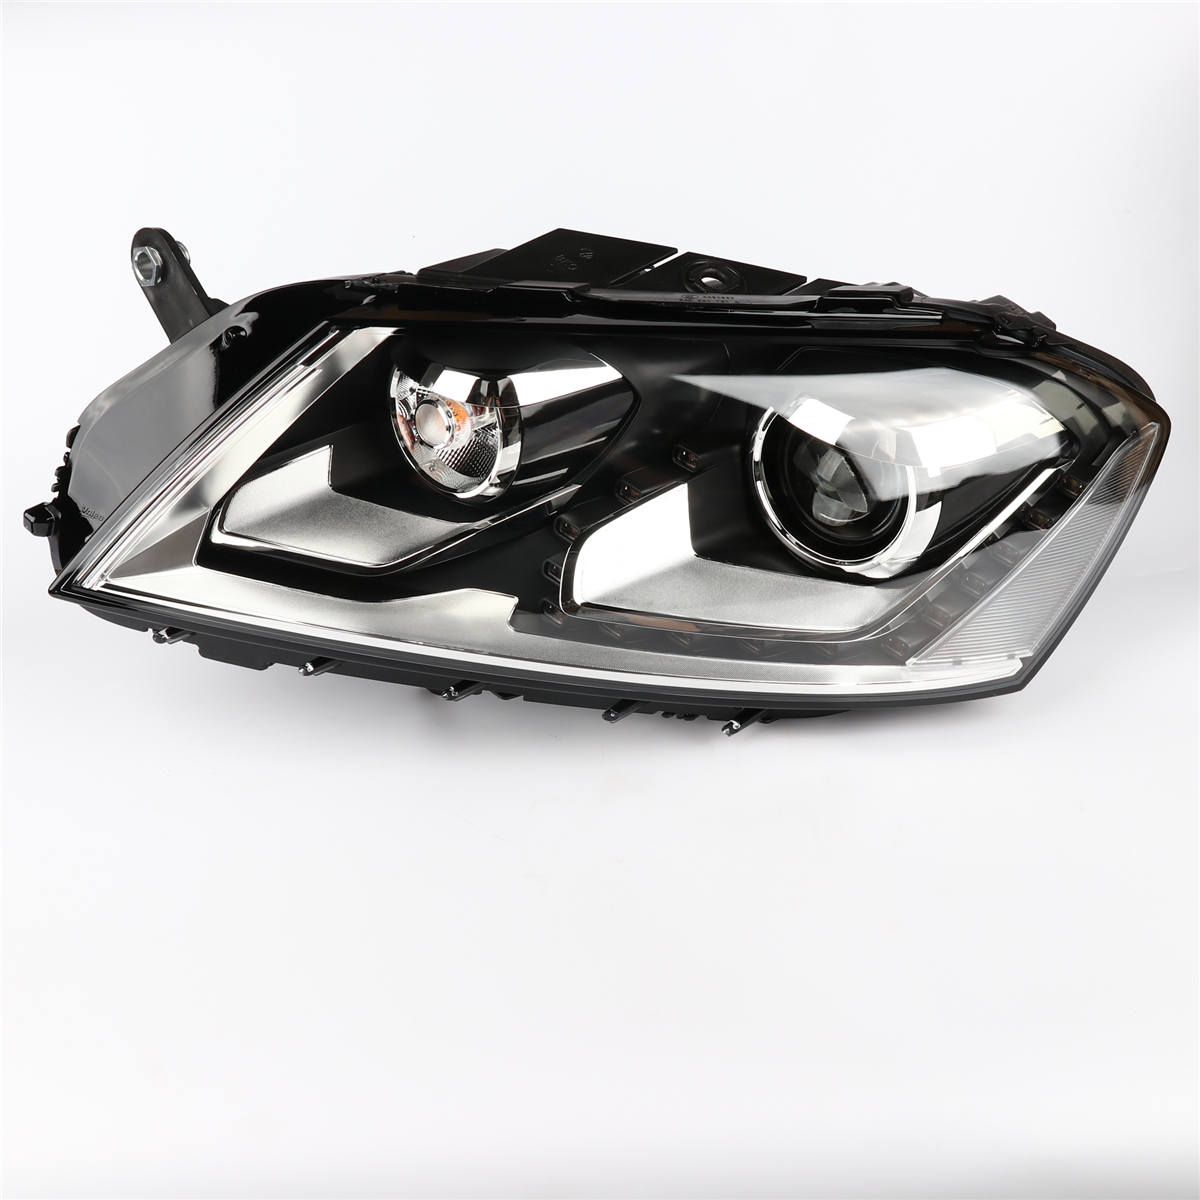 1Pcs Left Side OEM HID Xenon Headlight Head Light Lamp For VW Passat B7 L3AD 941 751 A 2pcs oem left